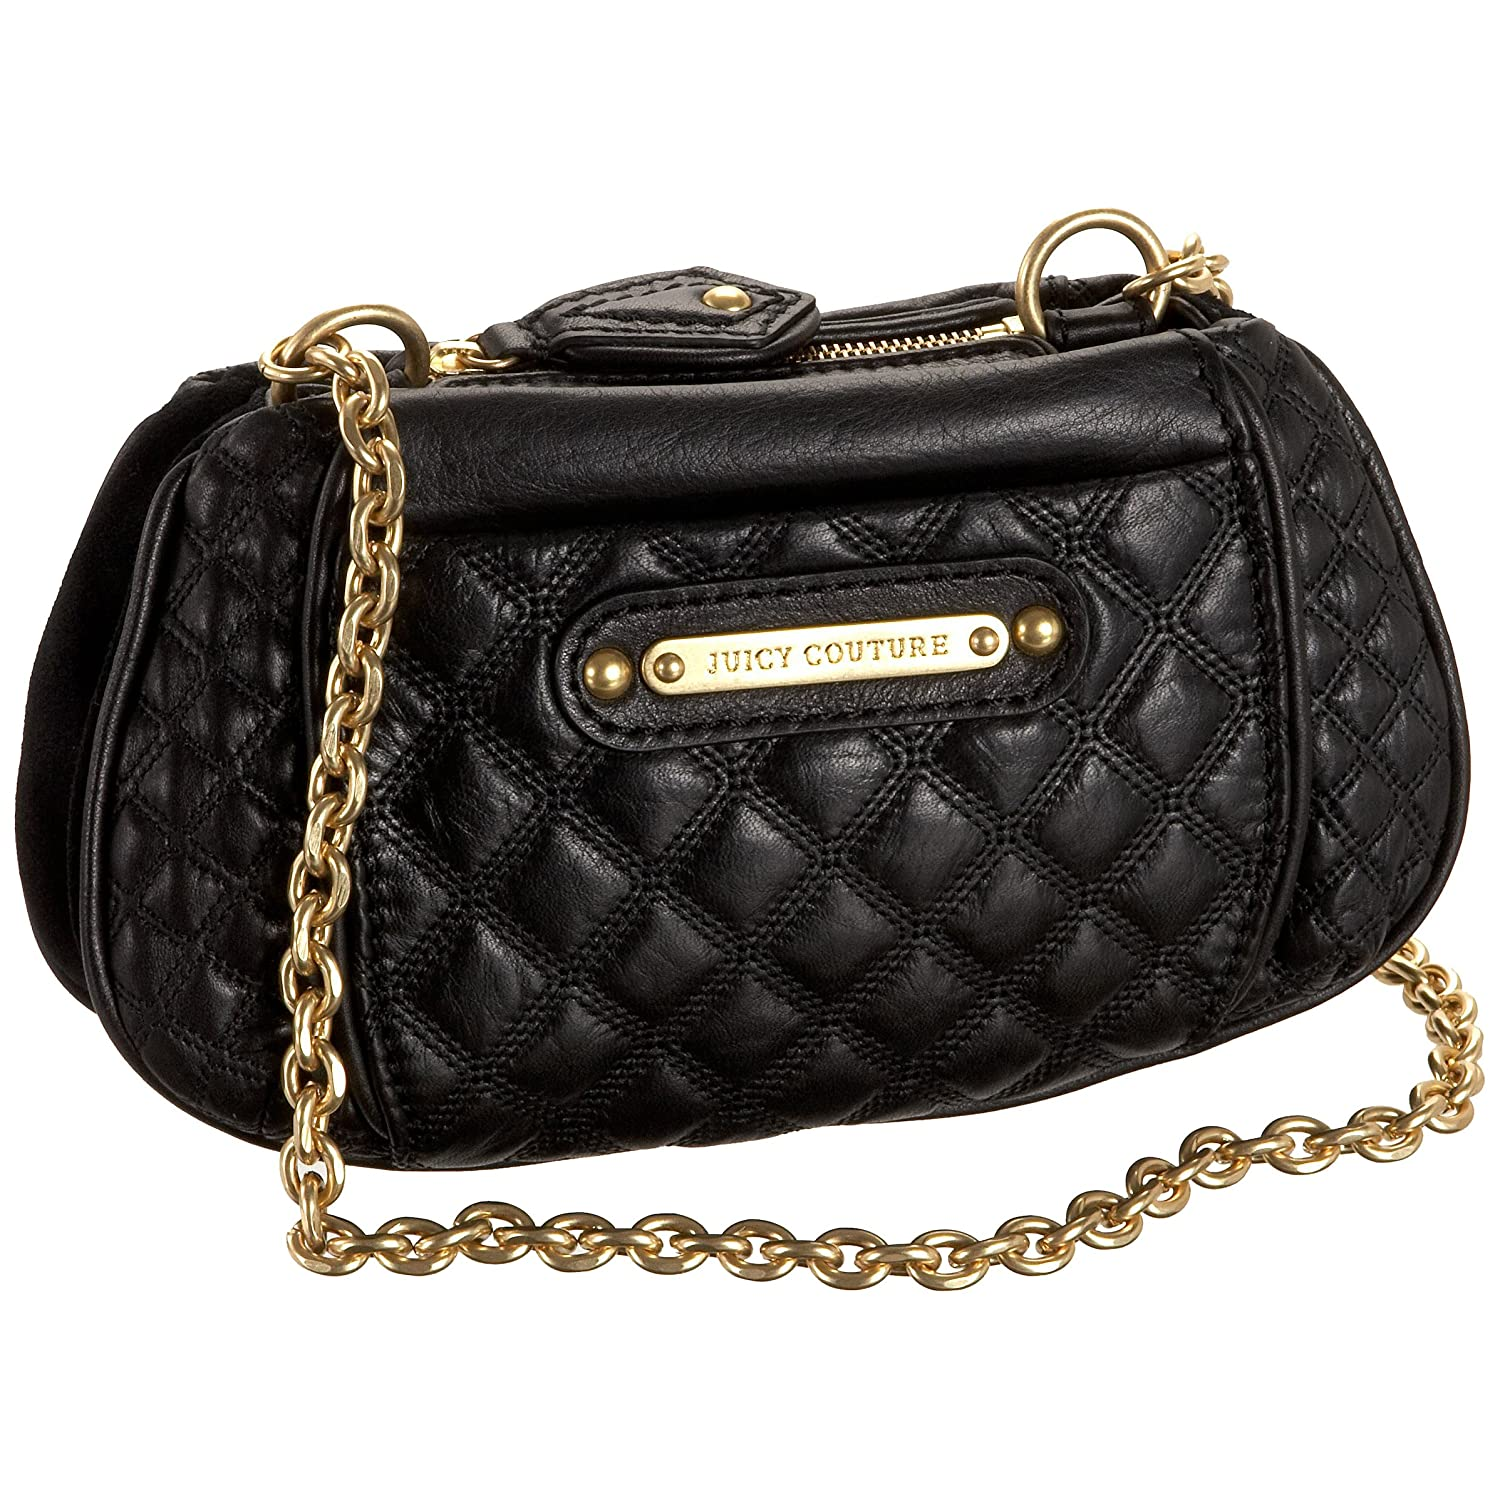 Juicy Couture Collection Quilted Leather Mini Cross-Body from endless.com